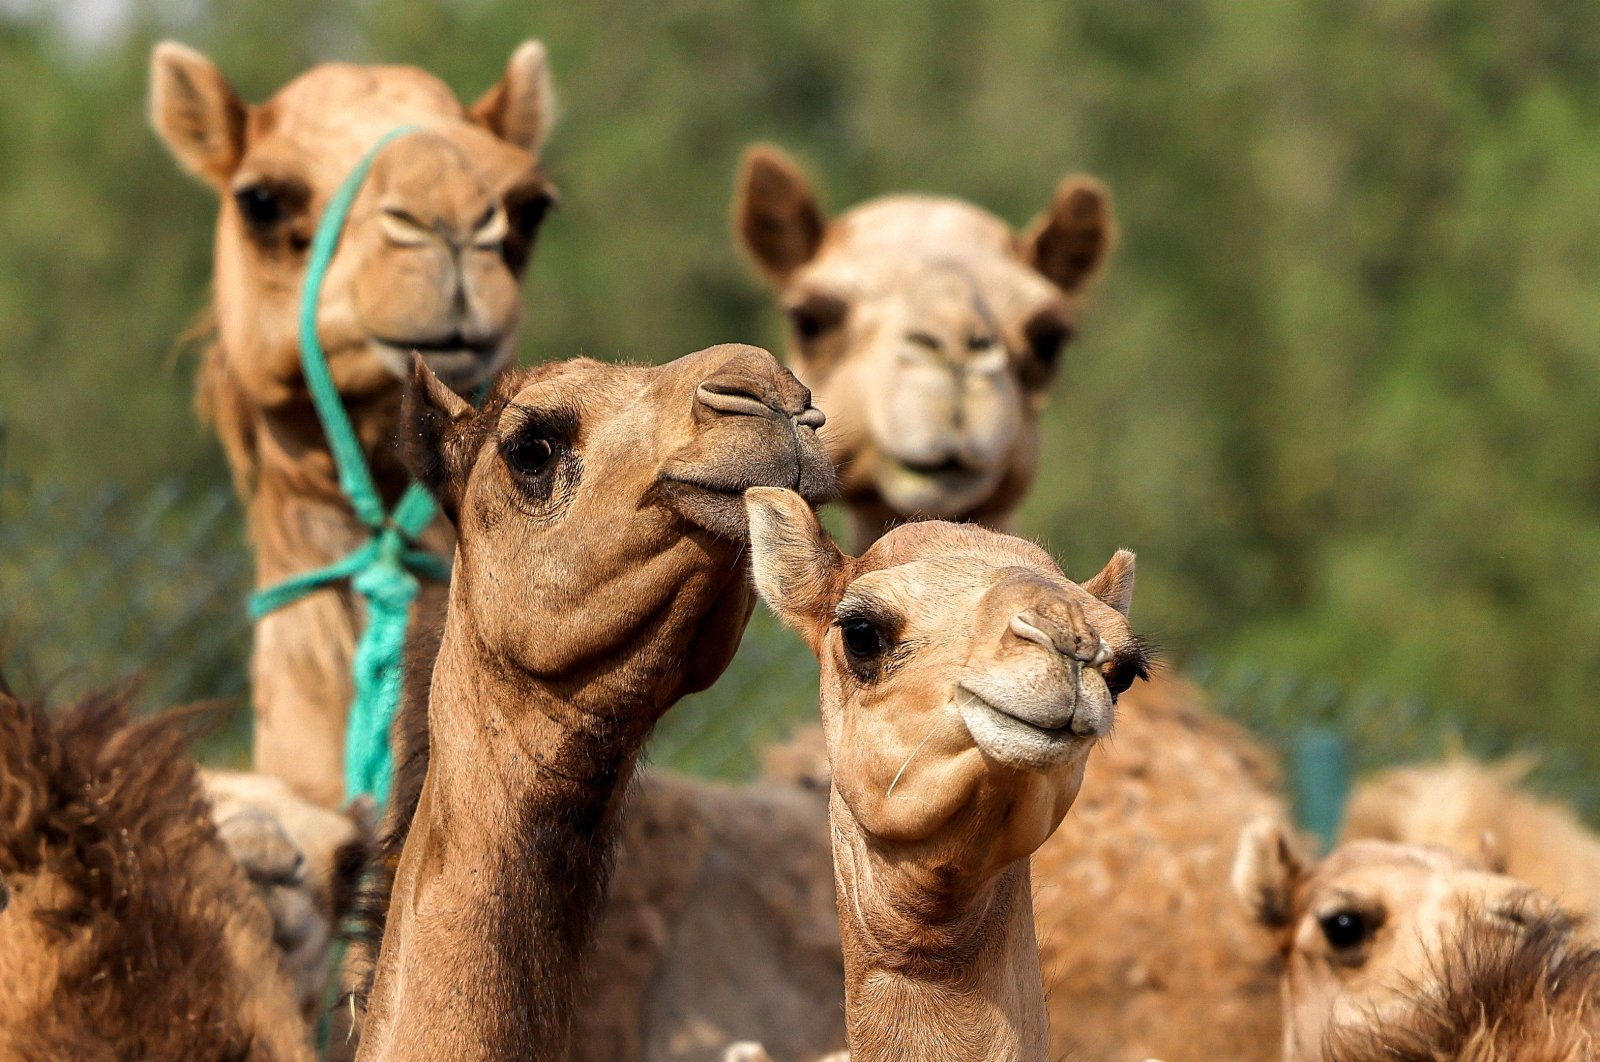 A view of cloned camel calves in a pen at the Reproductive Biotechnology Center in Dubai, UAE, June 4, 2021. (AFP Photo)